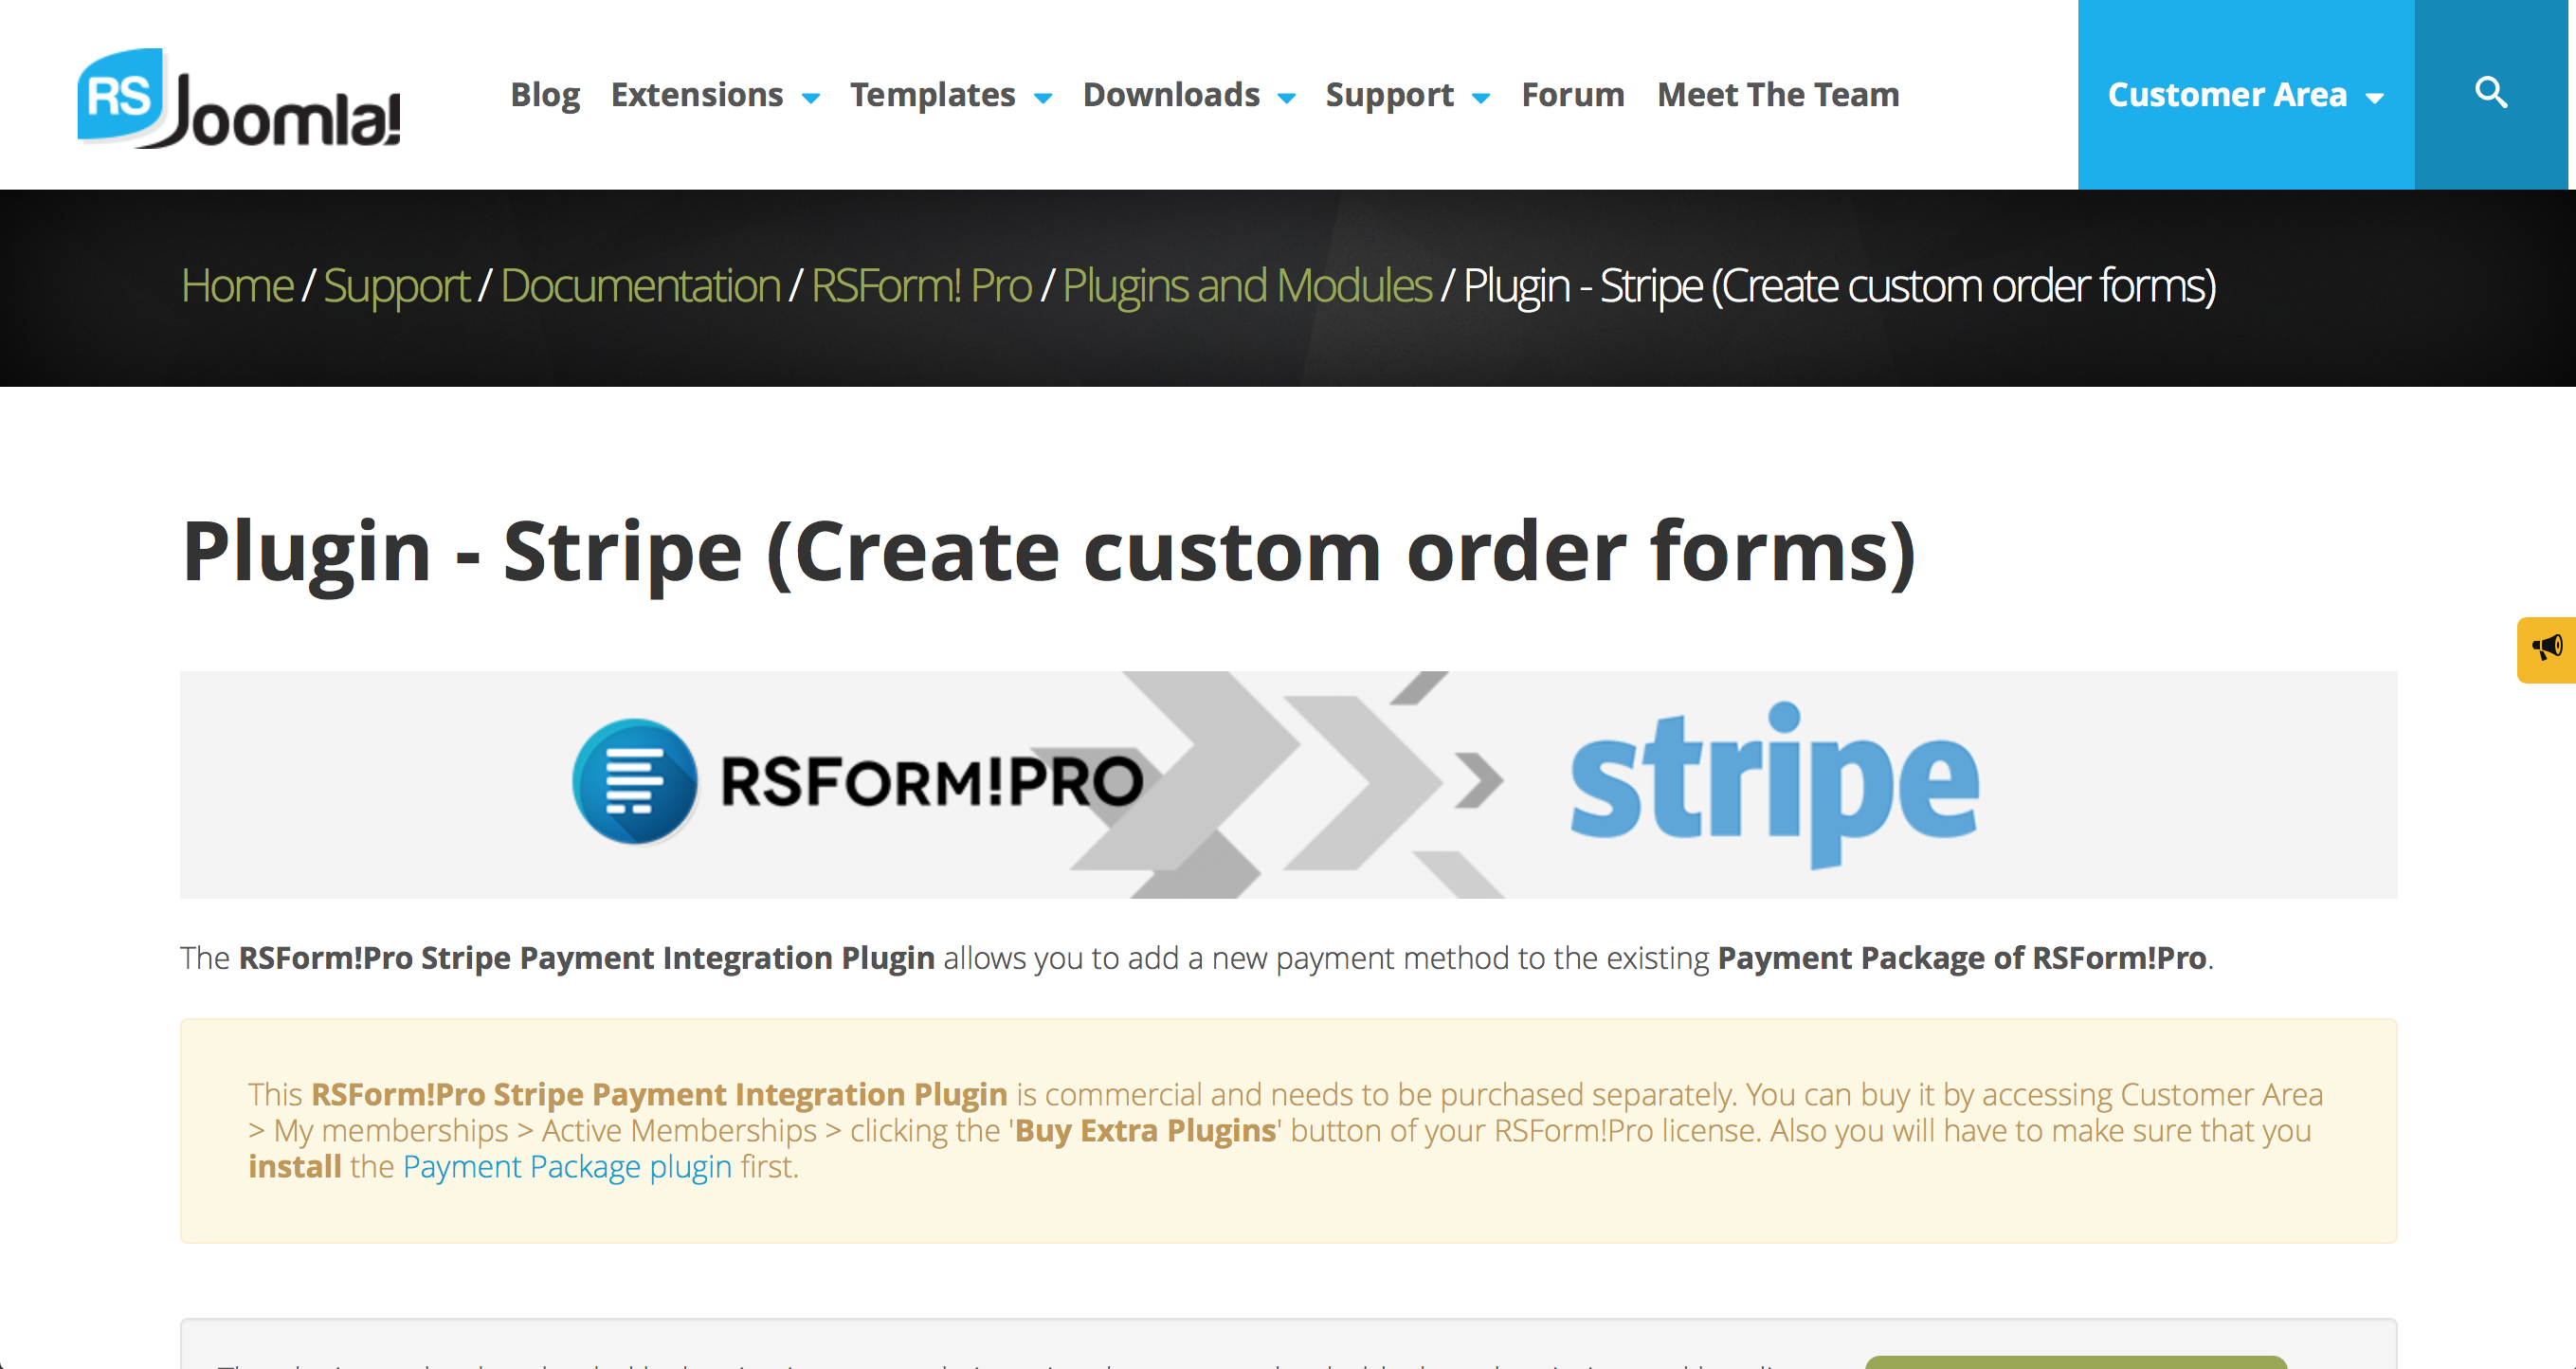 RSForm!Pro and Stripe - Automatically Adding the Fee